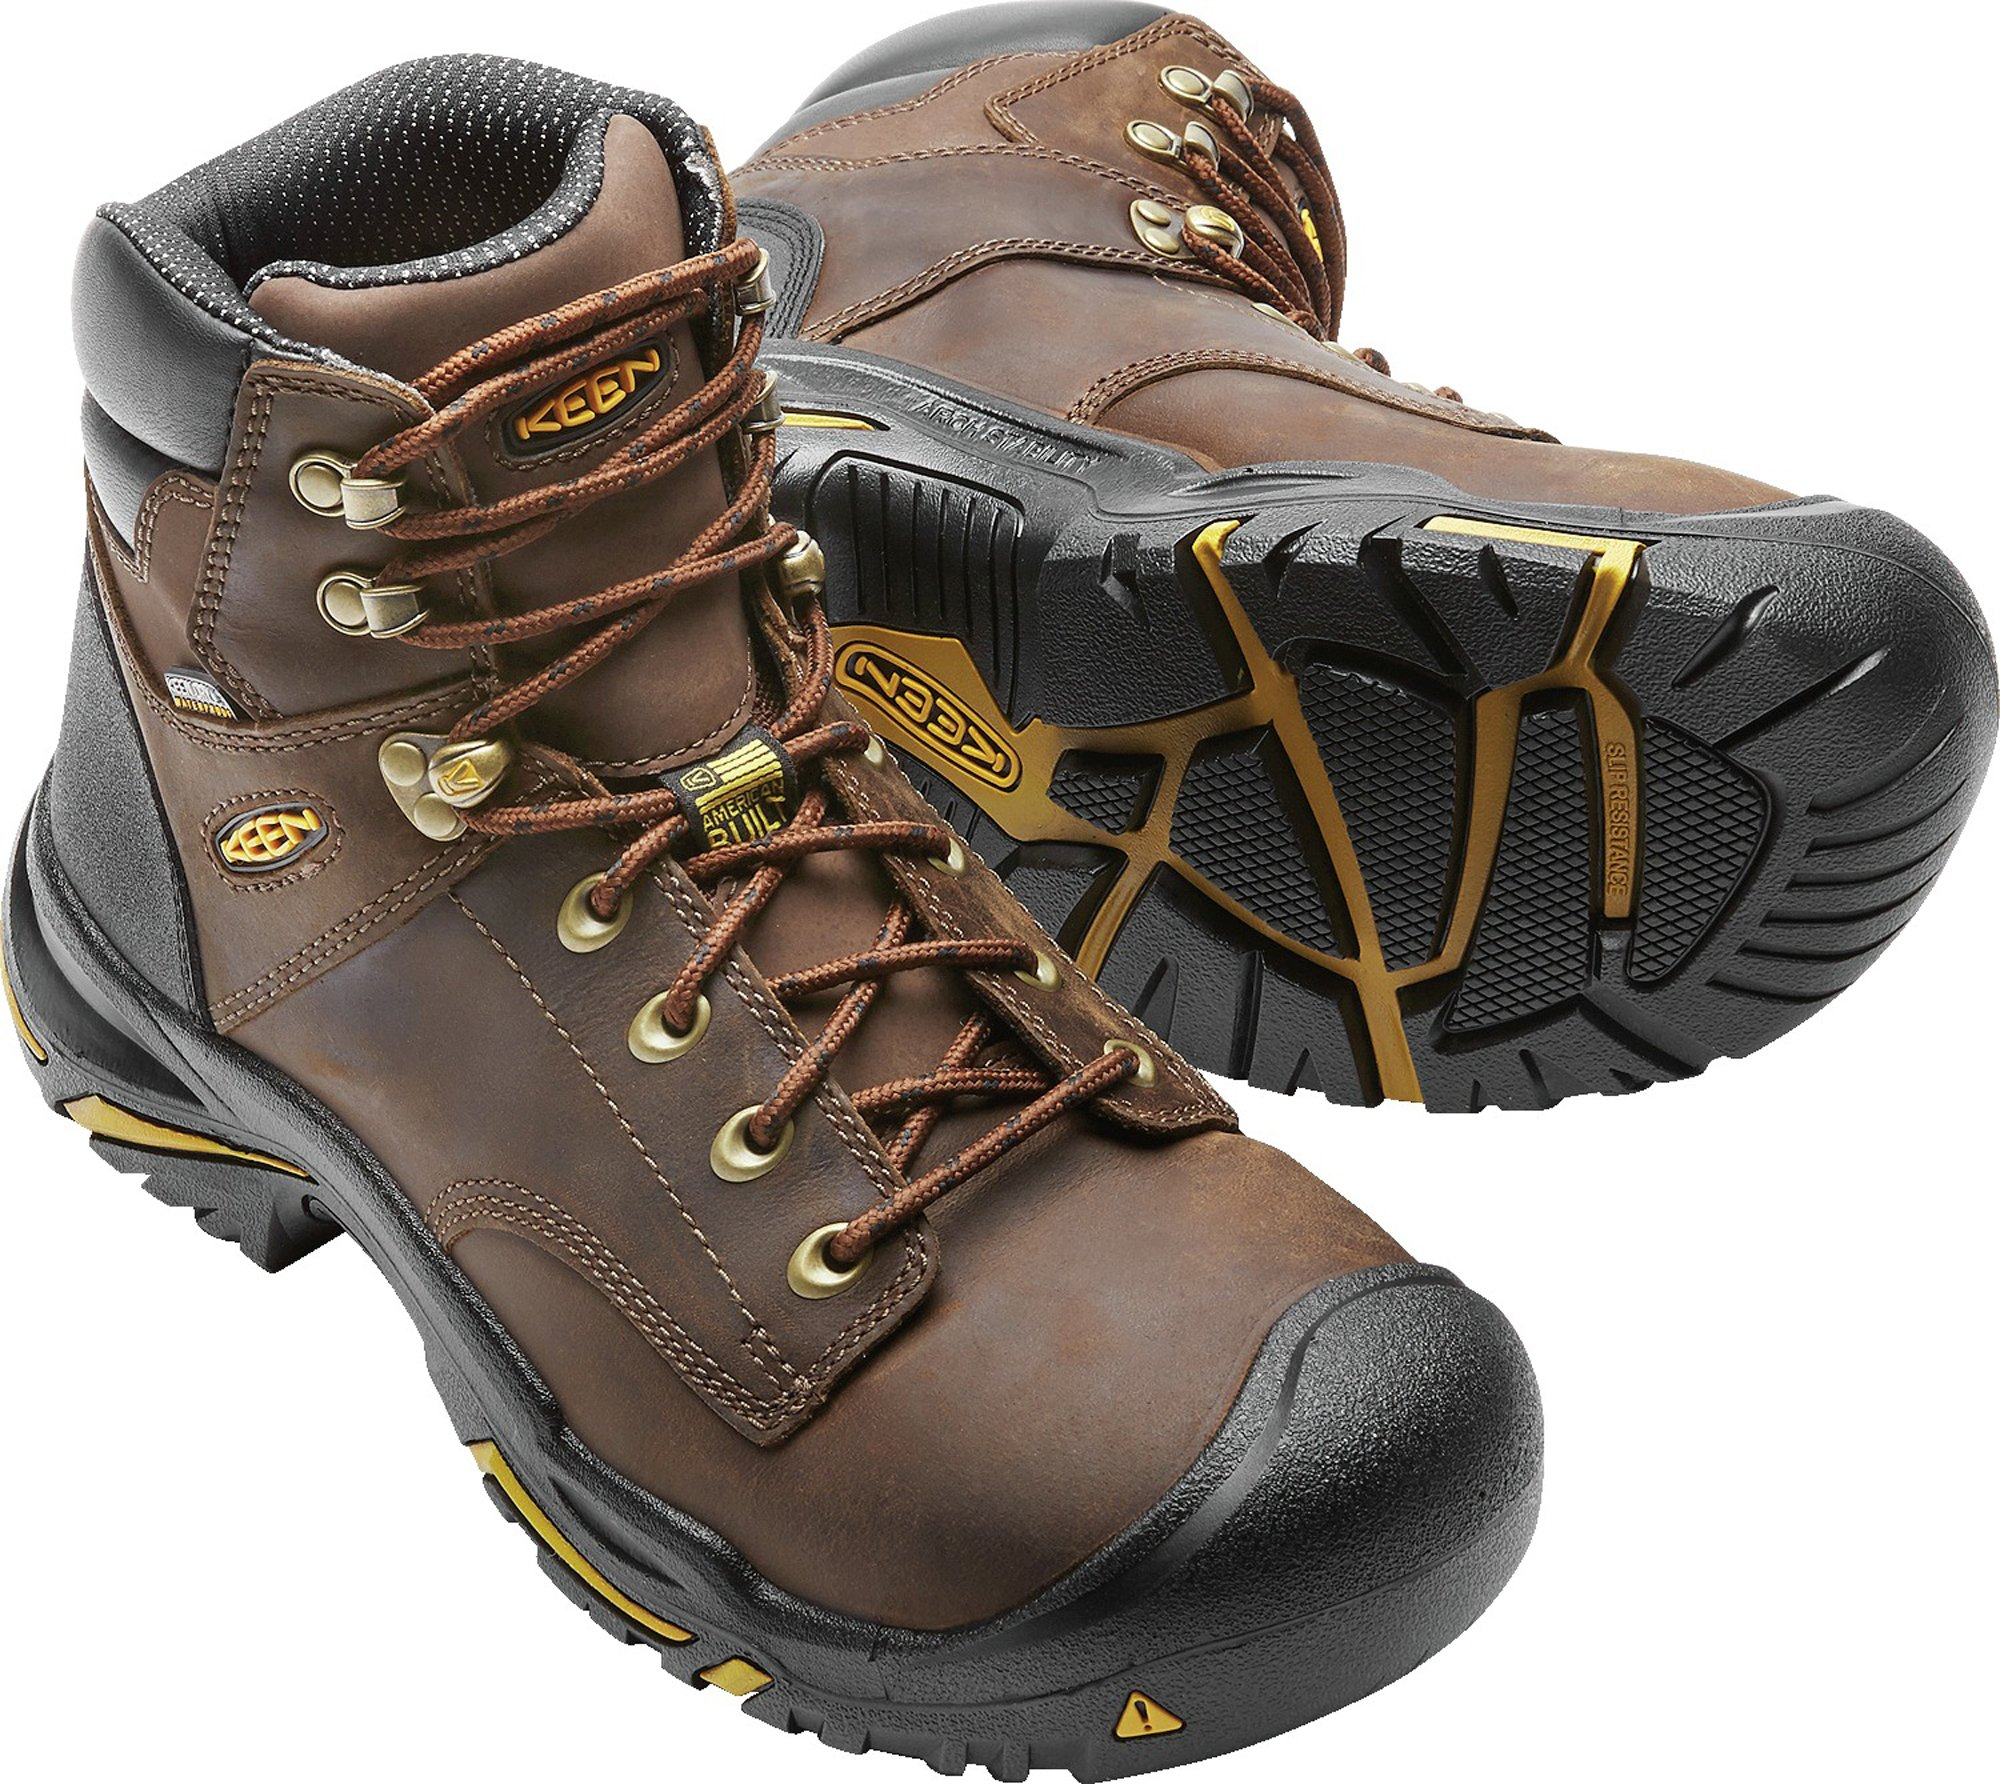 KEEN Utility MT Vernon 6'' Waterproof (Steel Toe), Men's Work Boot, Cascade Brown, 15 EE by KEEN Utility (Image #3)